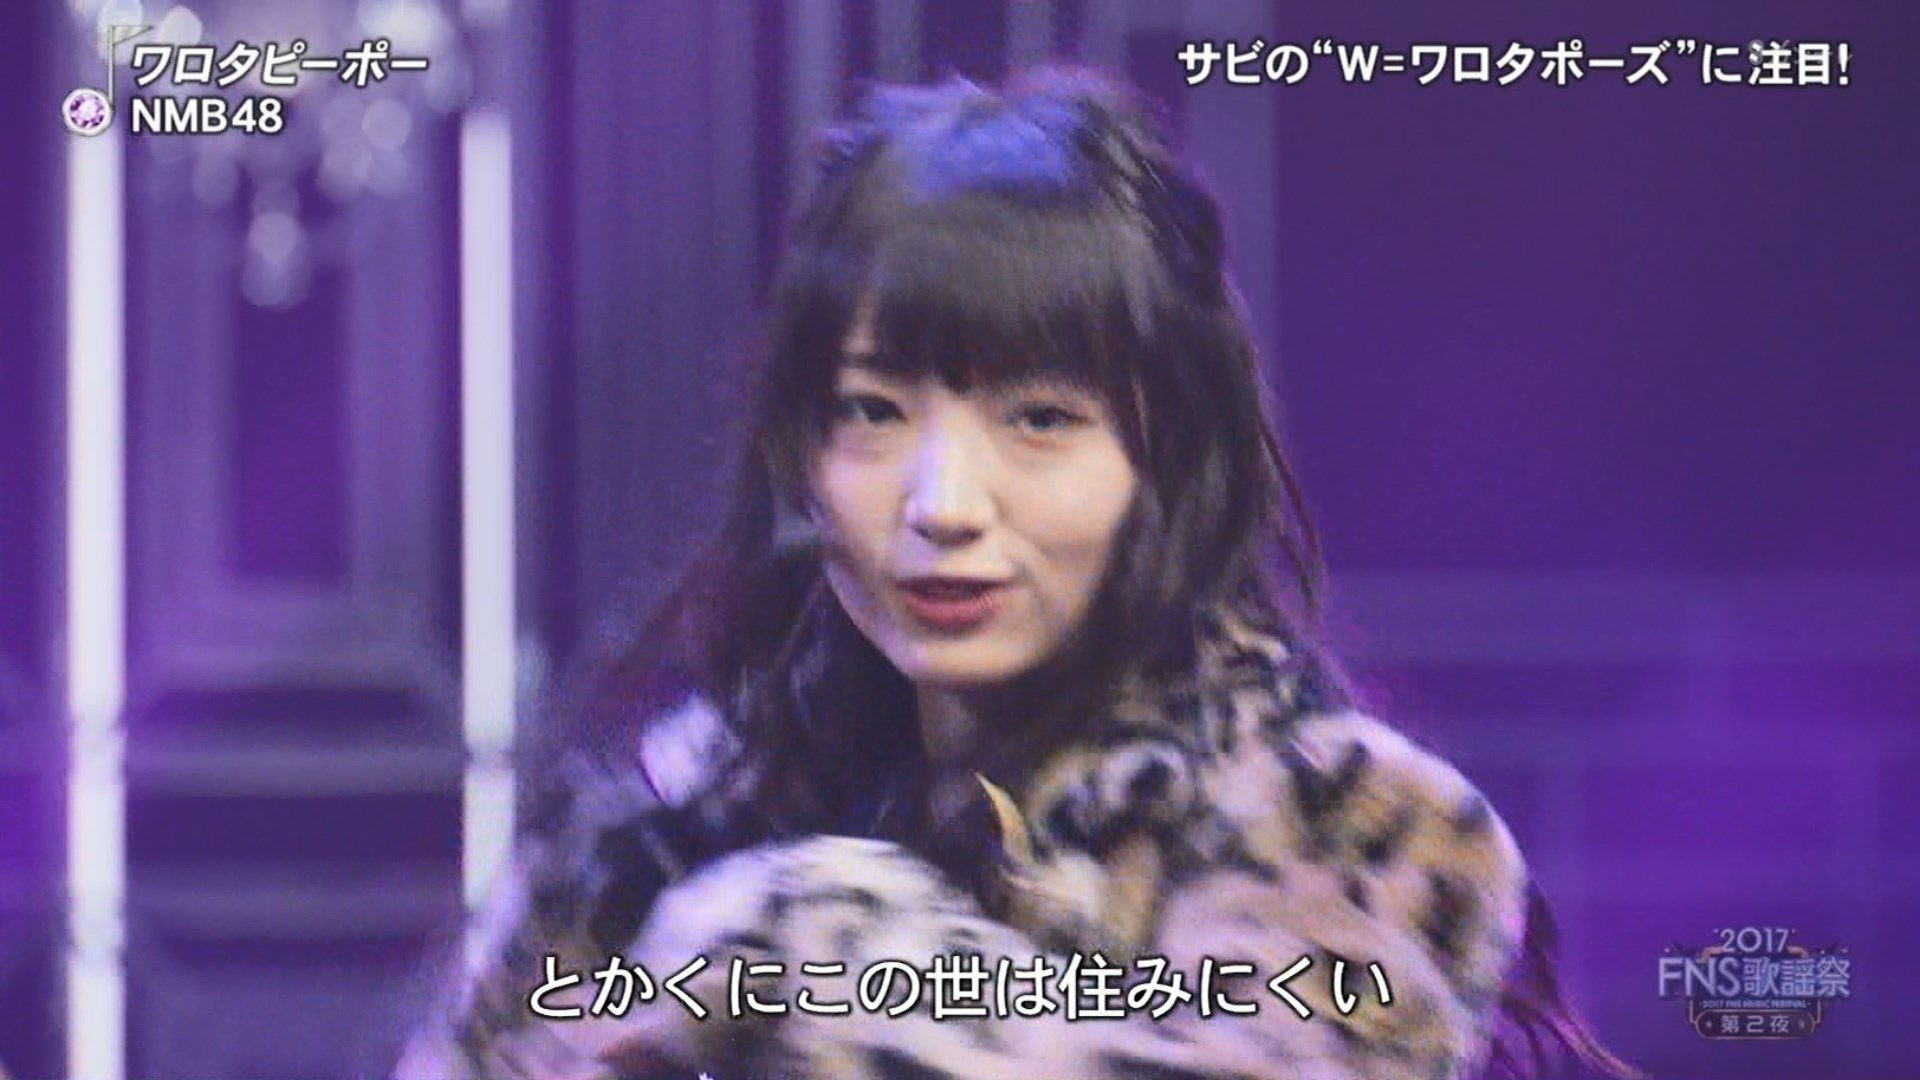 2017FNS歌謡祭第2夜・NMB48ワロタピーポーキャプ-018